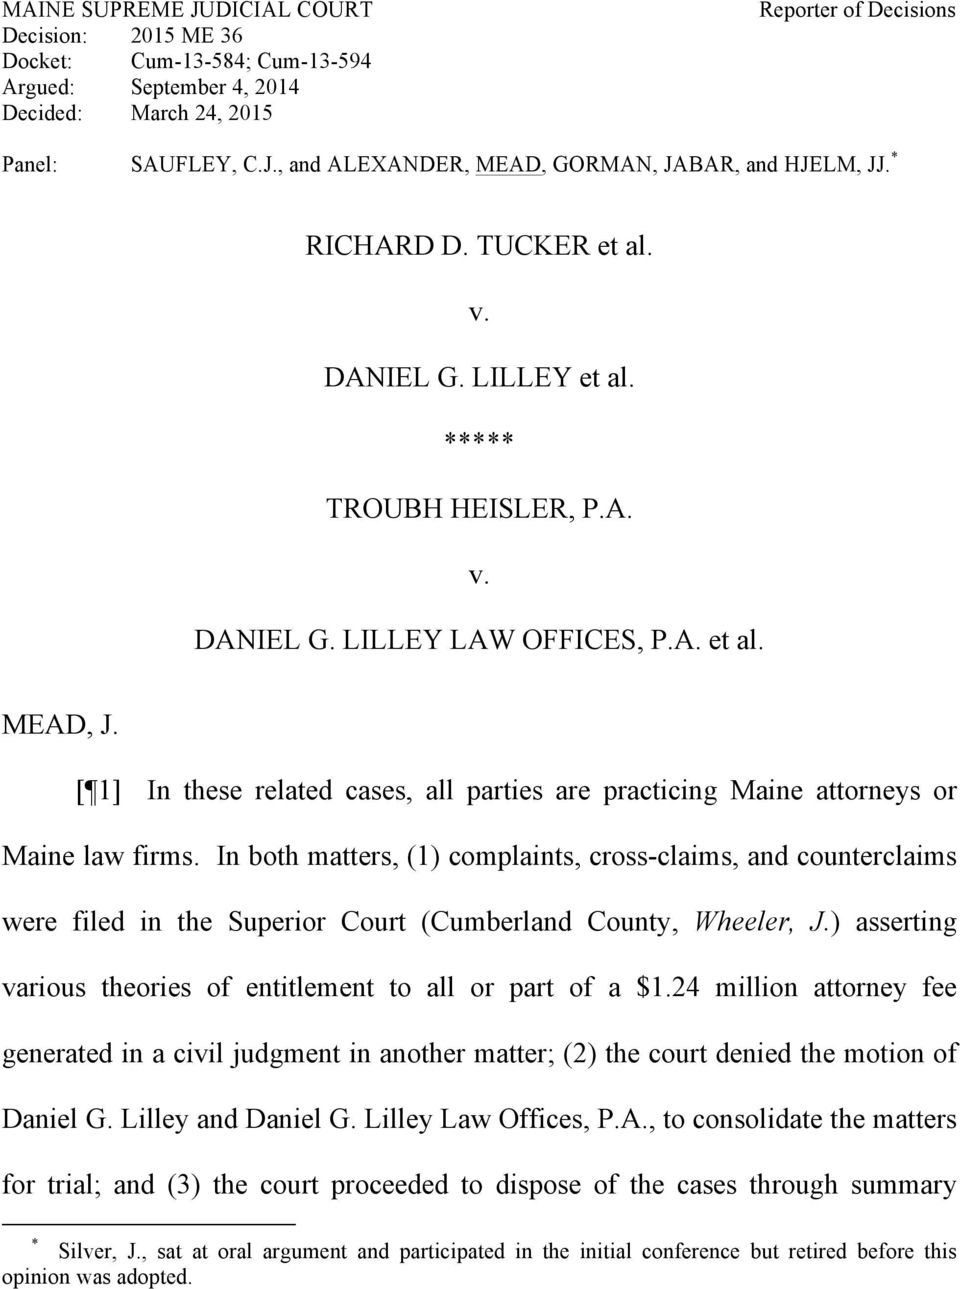 [ 1] In these related cases, all parties are practicing Maine attorneys or Maine law firms.